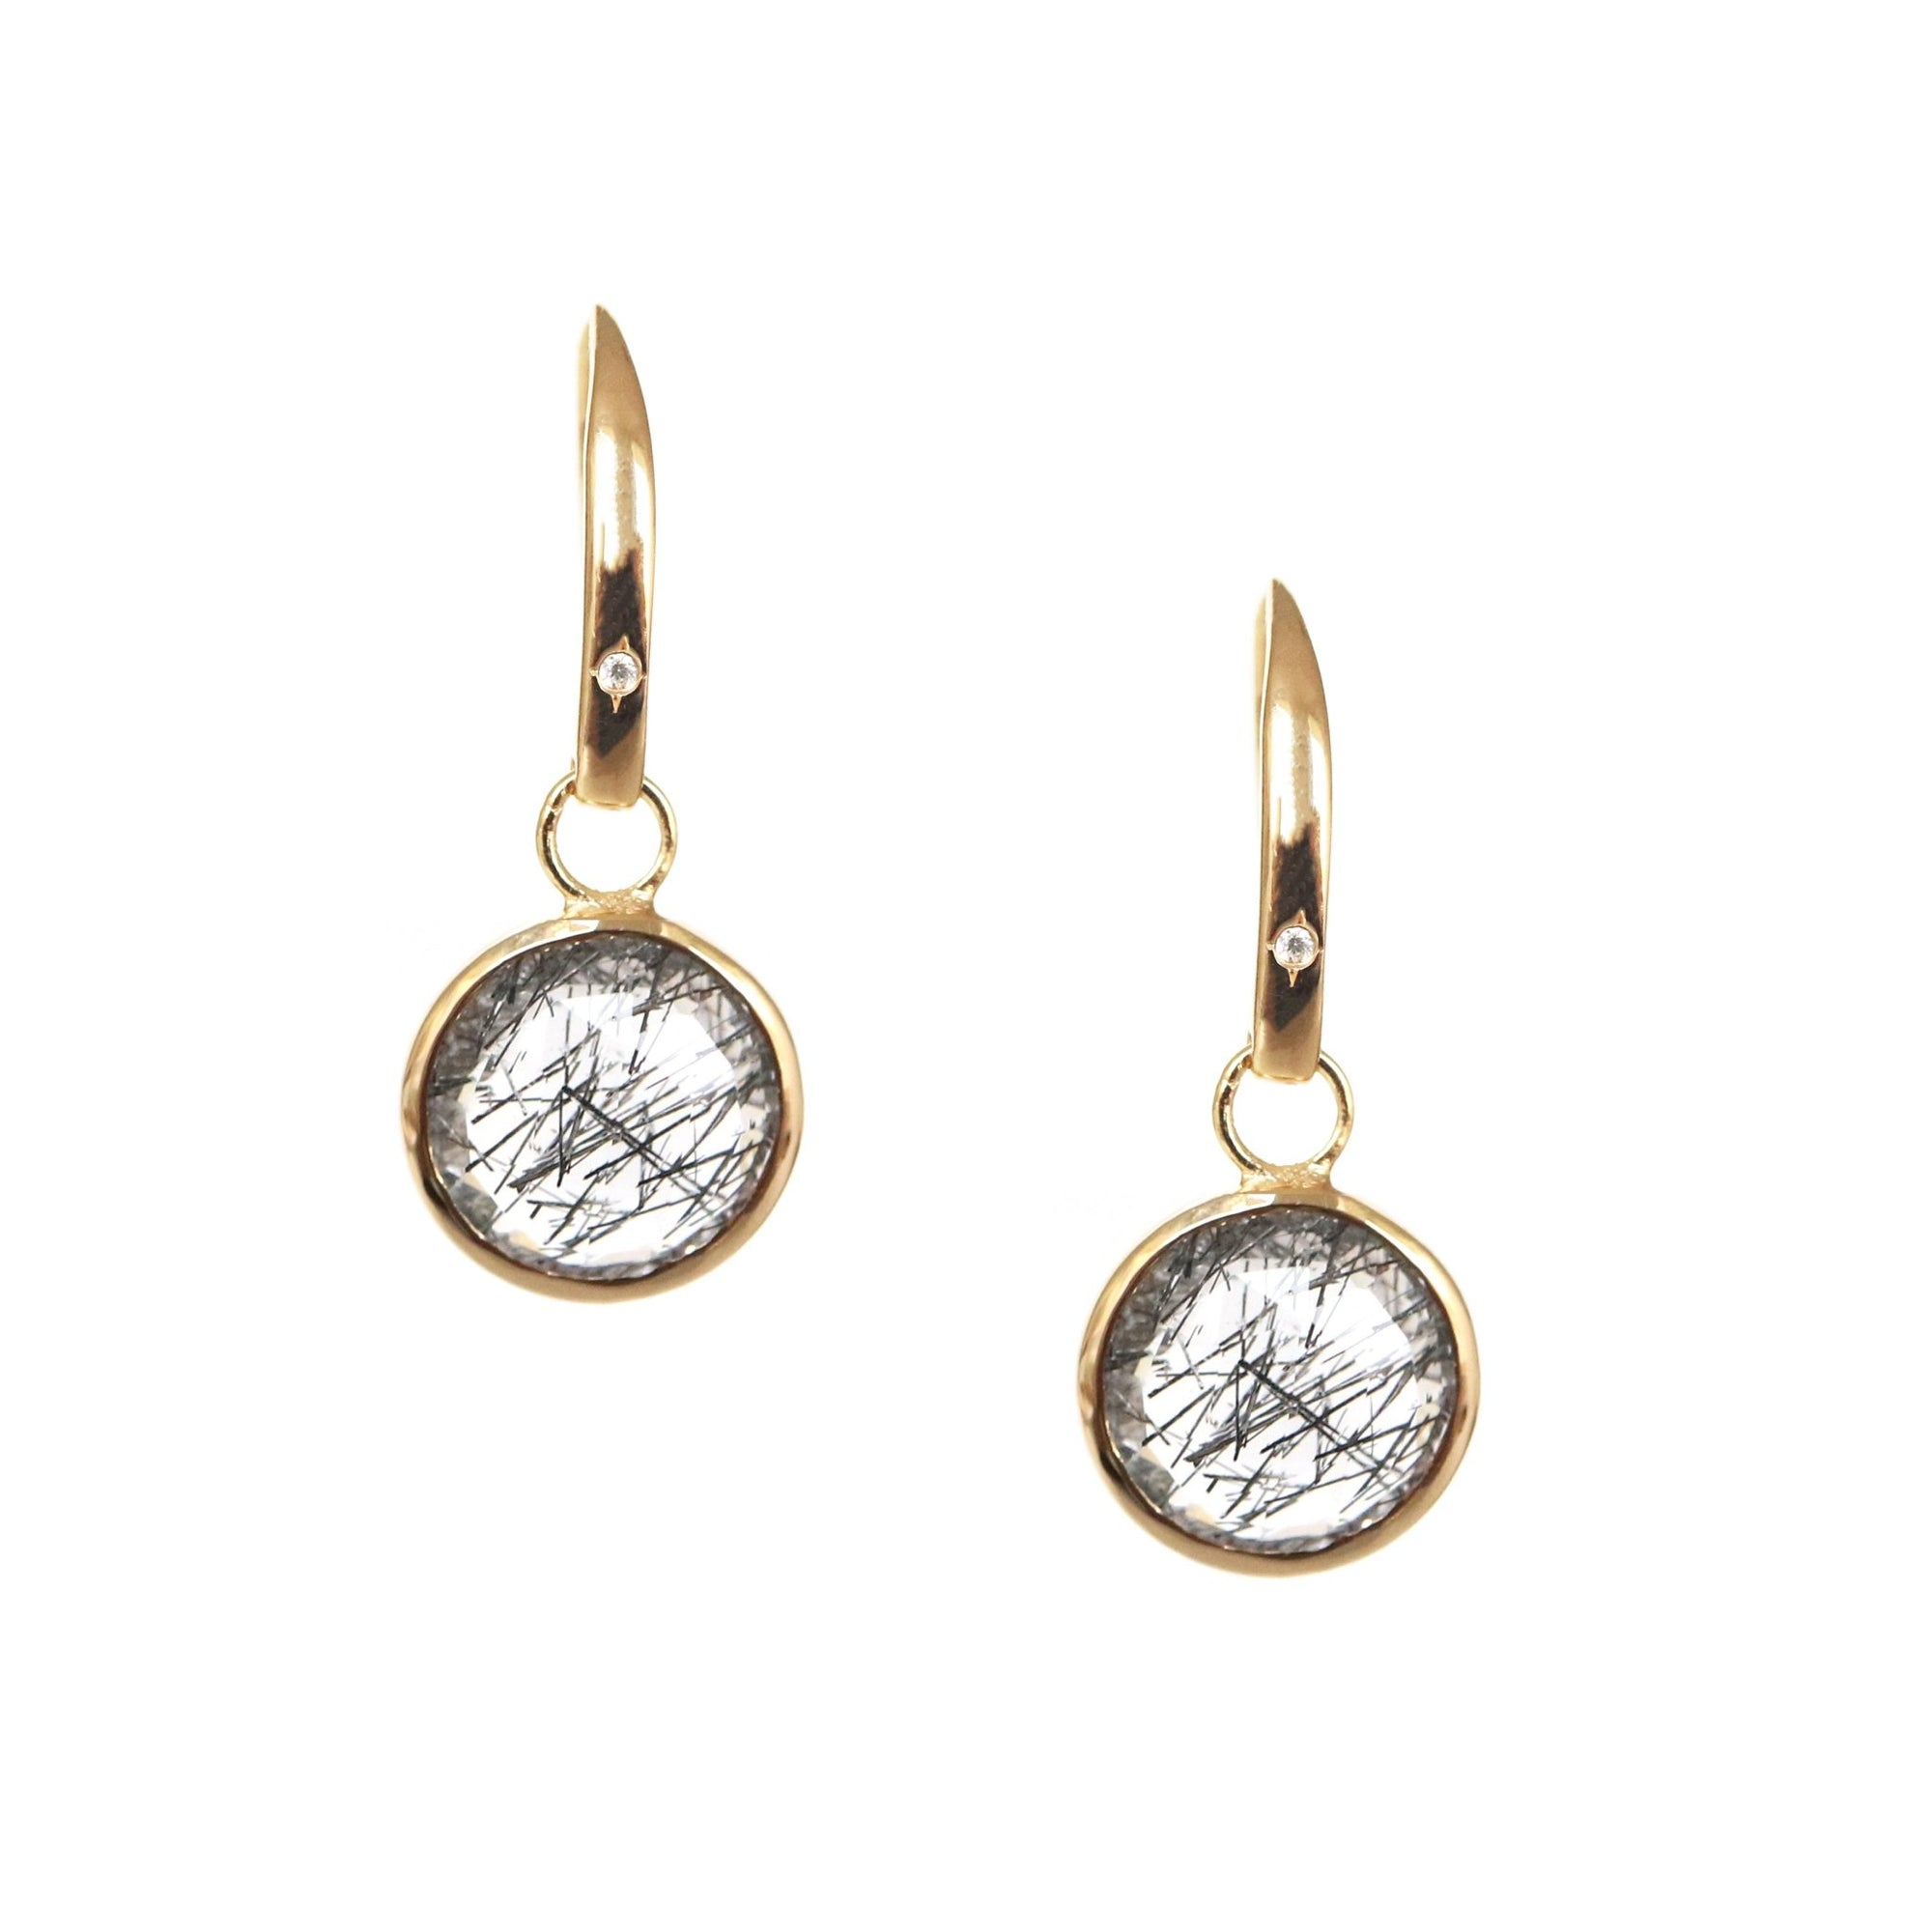 LEGACY DROP EARRINGS - BLACK RUTILATED QUARTZ, CUBIC ZIRCONIA & GOLD - SO PRETTY CARA COTTER